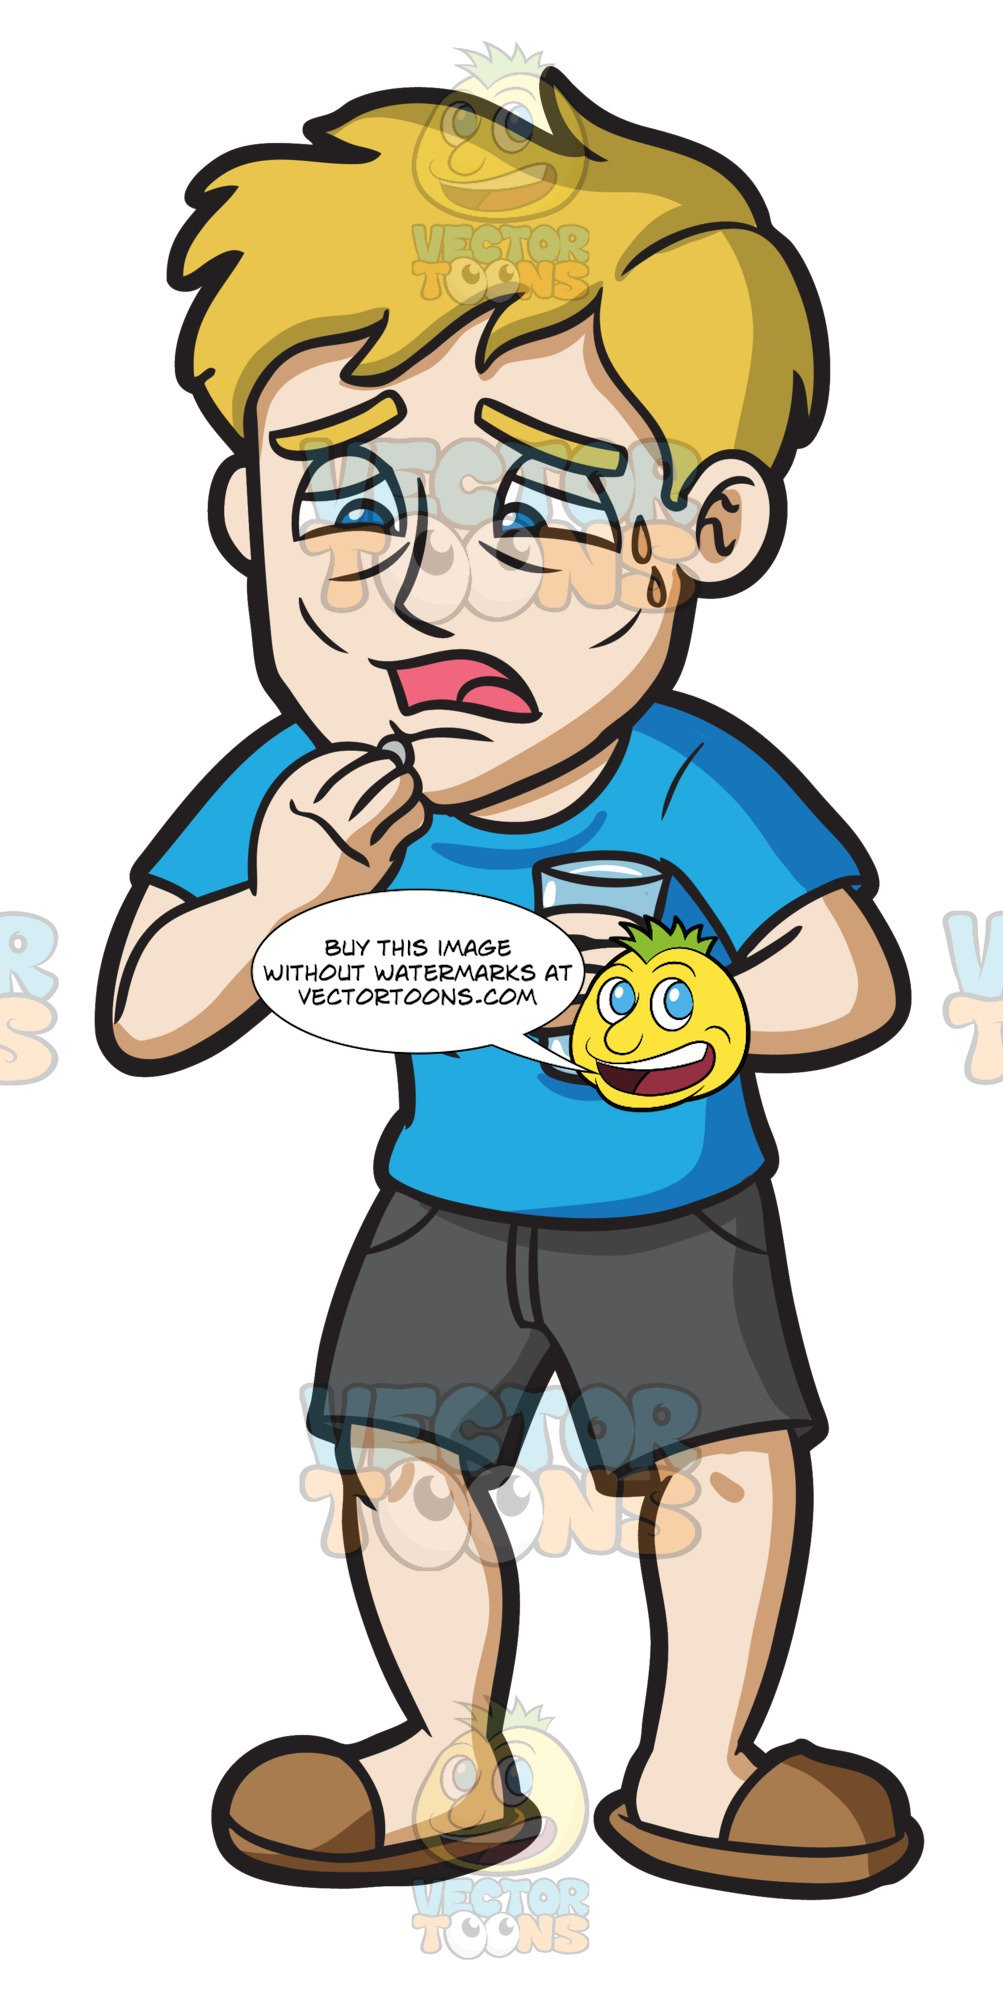 I feel sick clipart clipart royalty free A Sick Guy Taking His Medication clipart royalty free